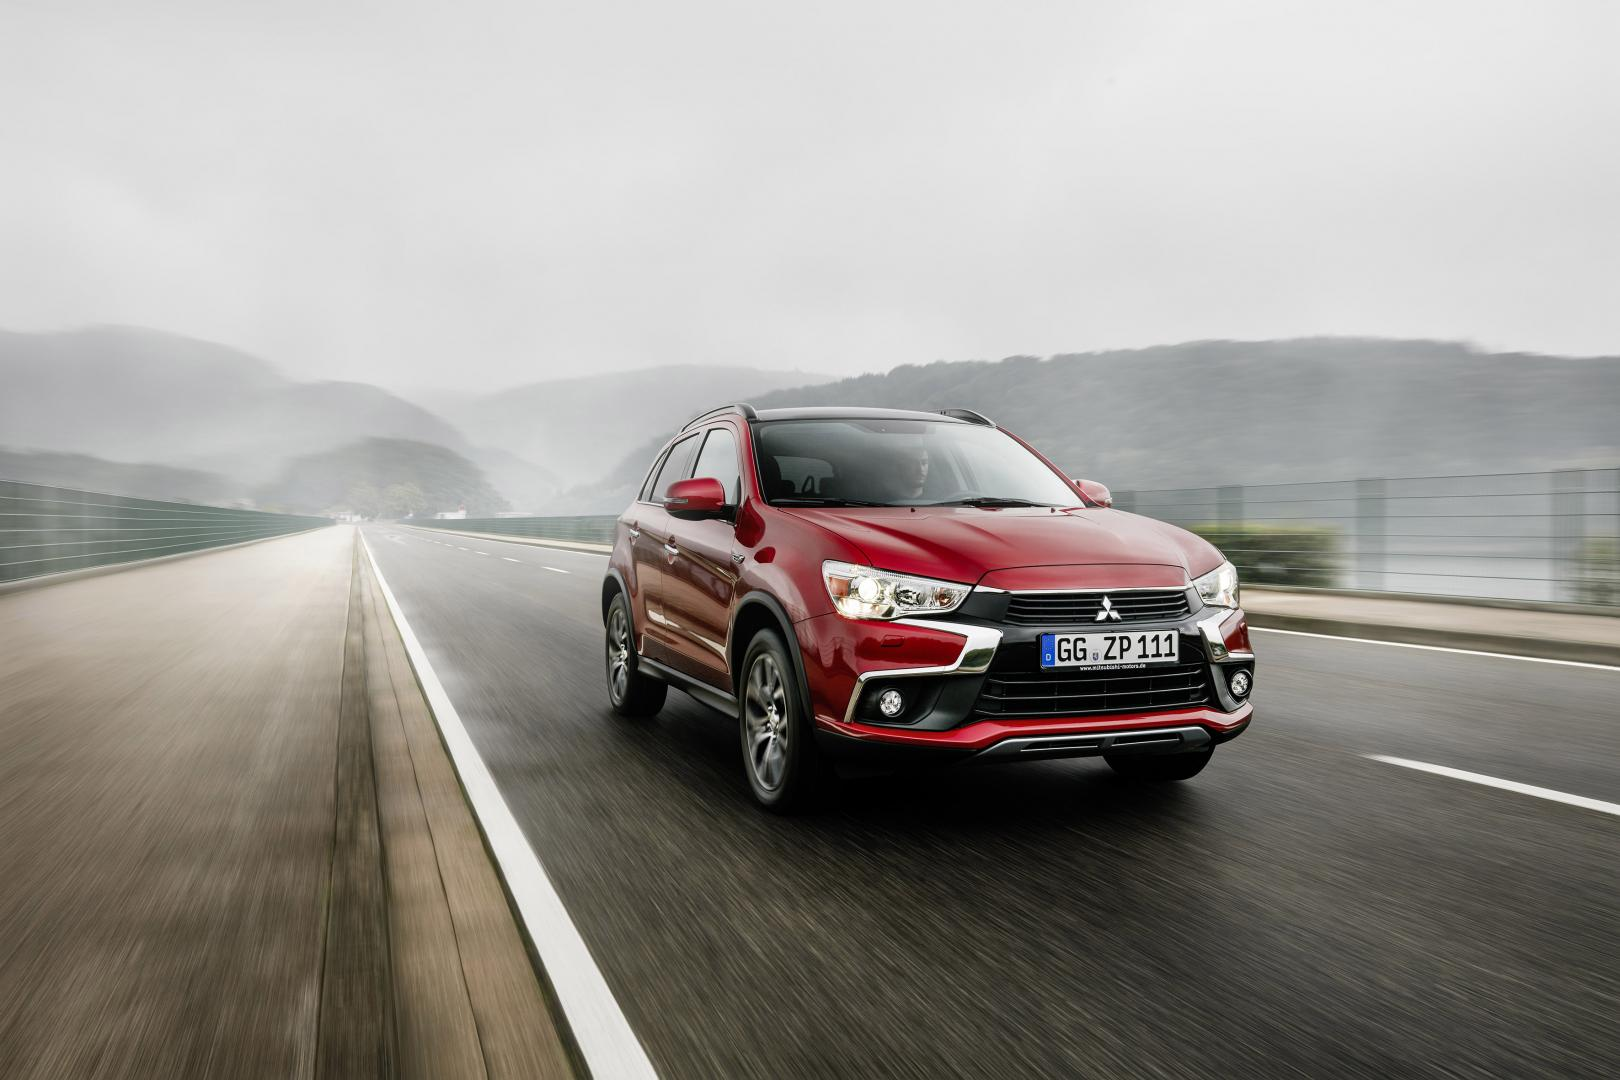 mitsubishi ASX 1.6 mitec cleartec instyle test 2017 (1)